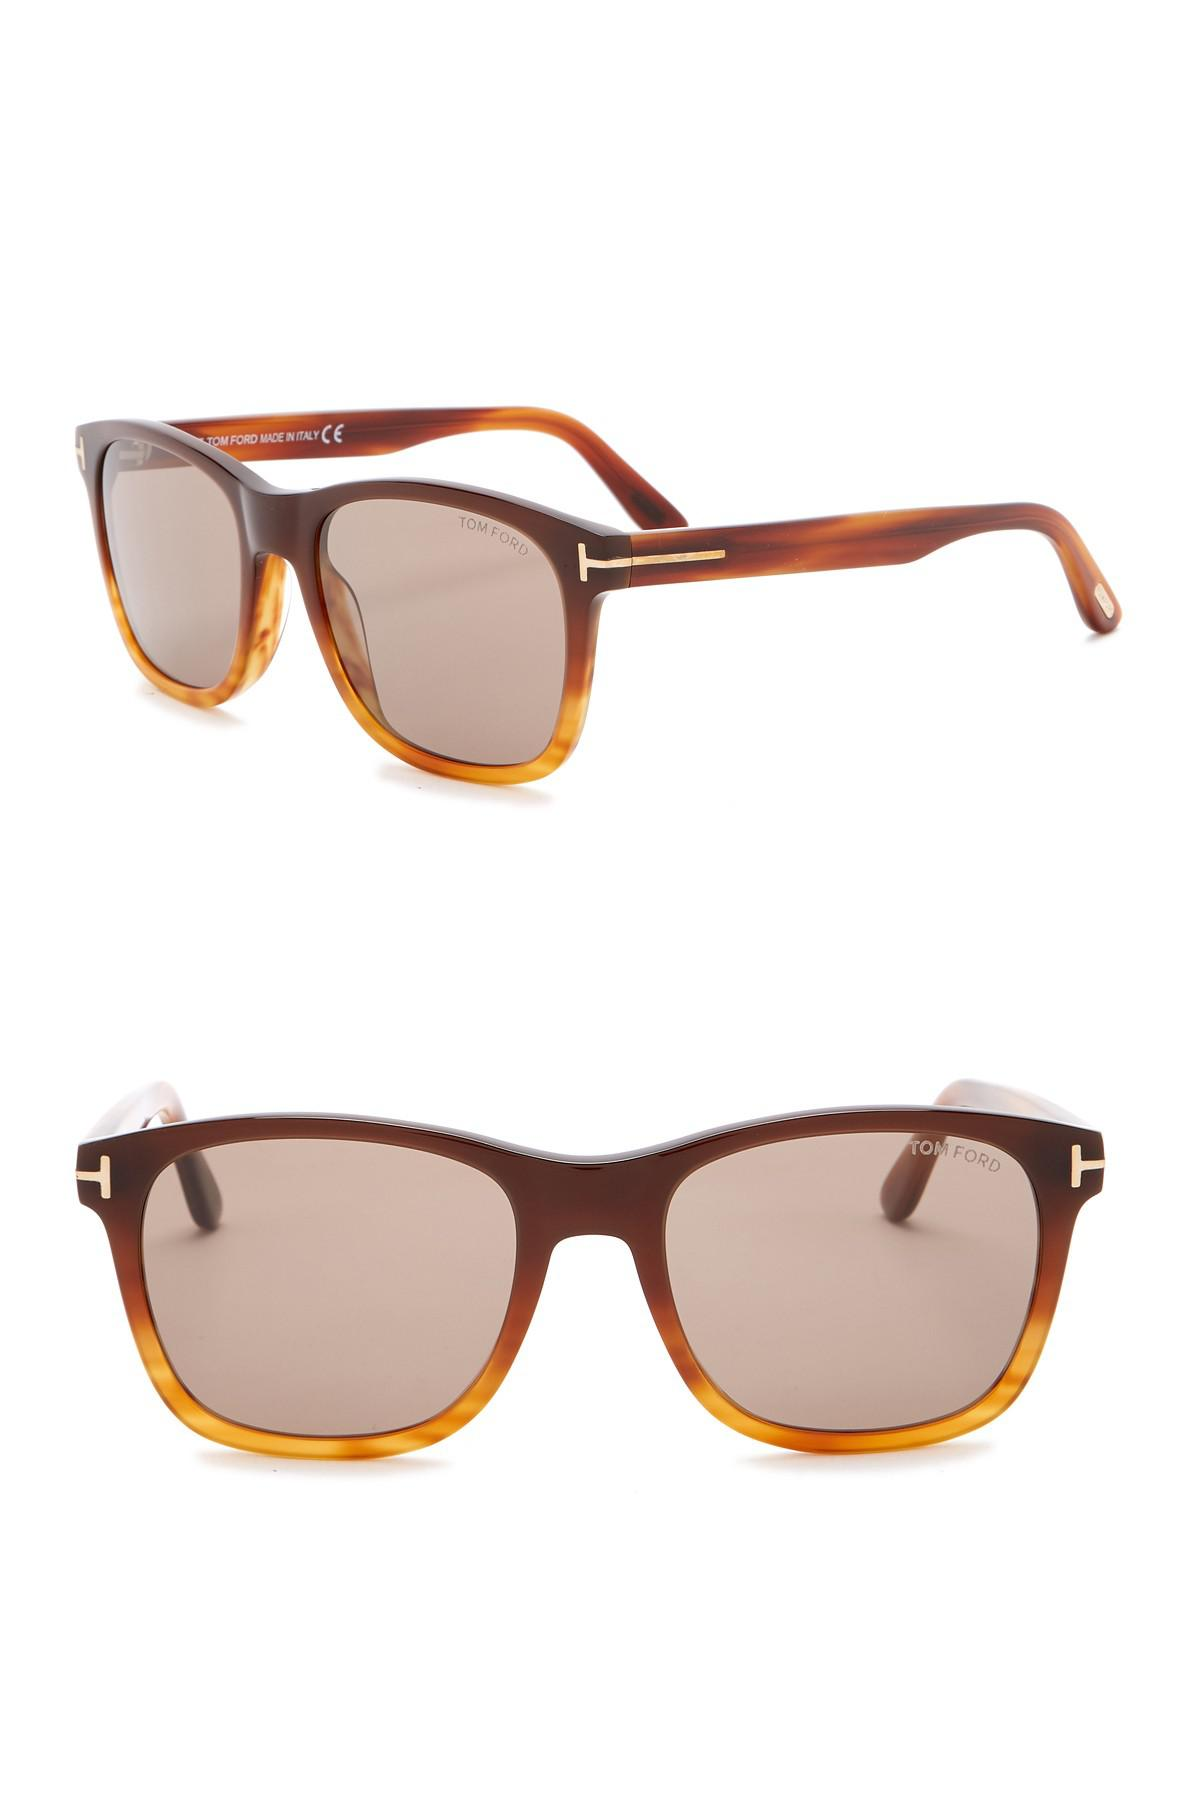 fc6c322a7e6 Lyst - Tom Ford Eric 55mm Square Sunglasses in Brown for Men